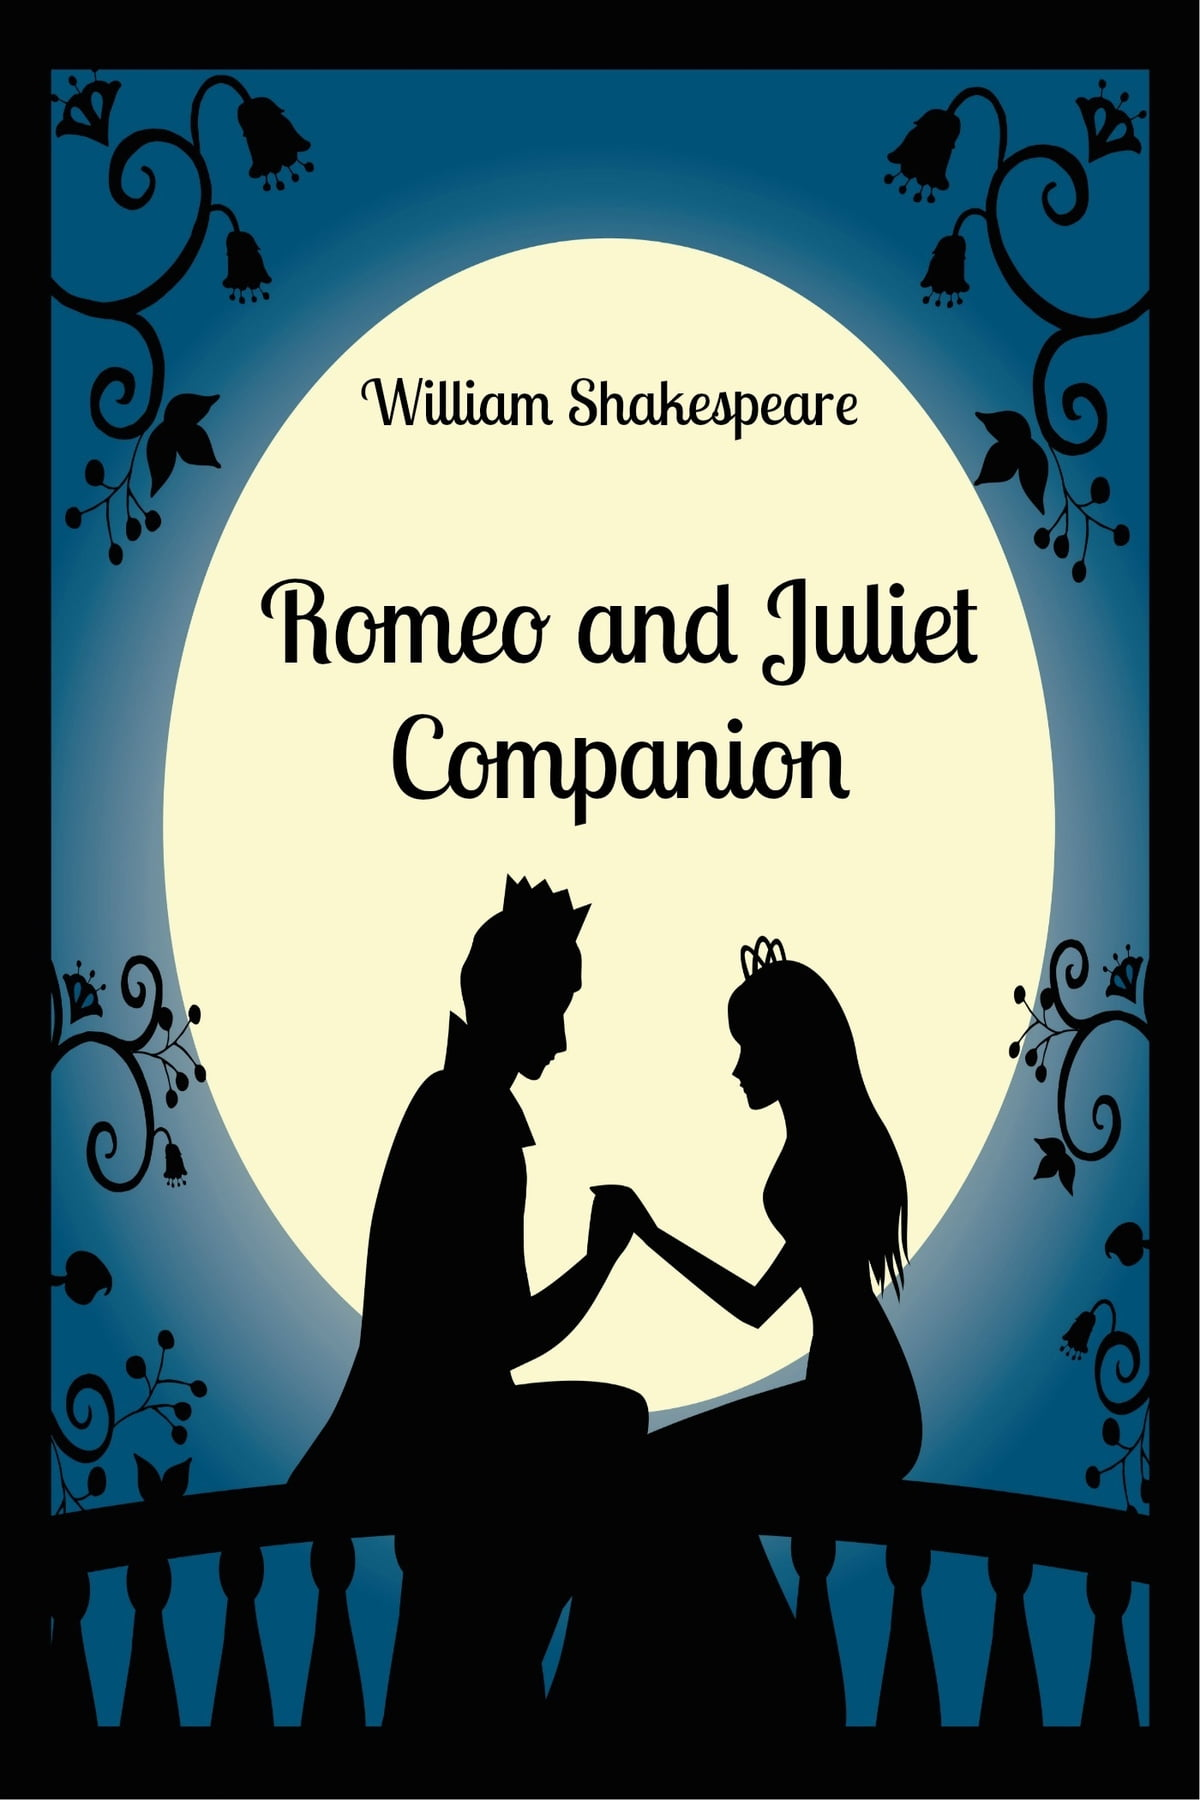 Romeo And Juliet Companion Includes Study Guide Complete